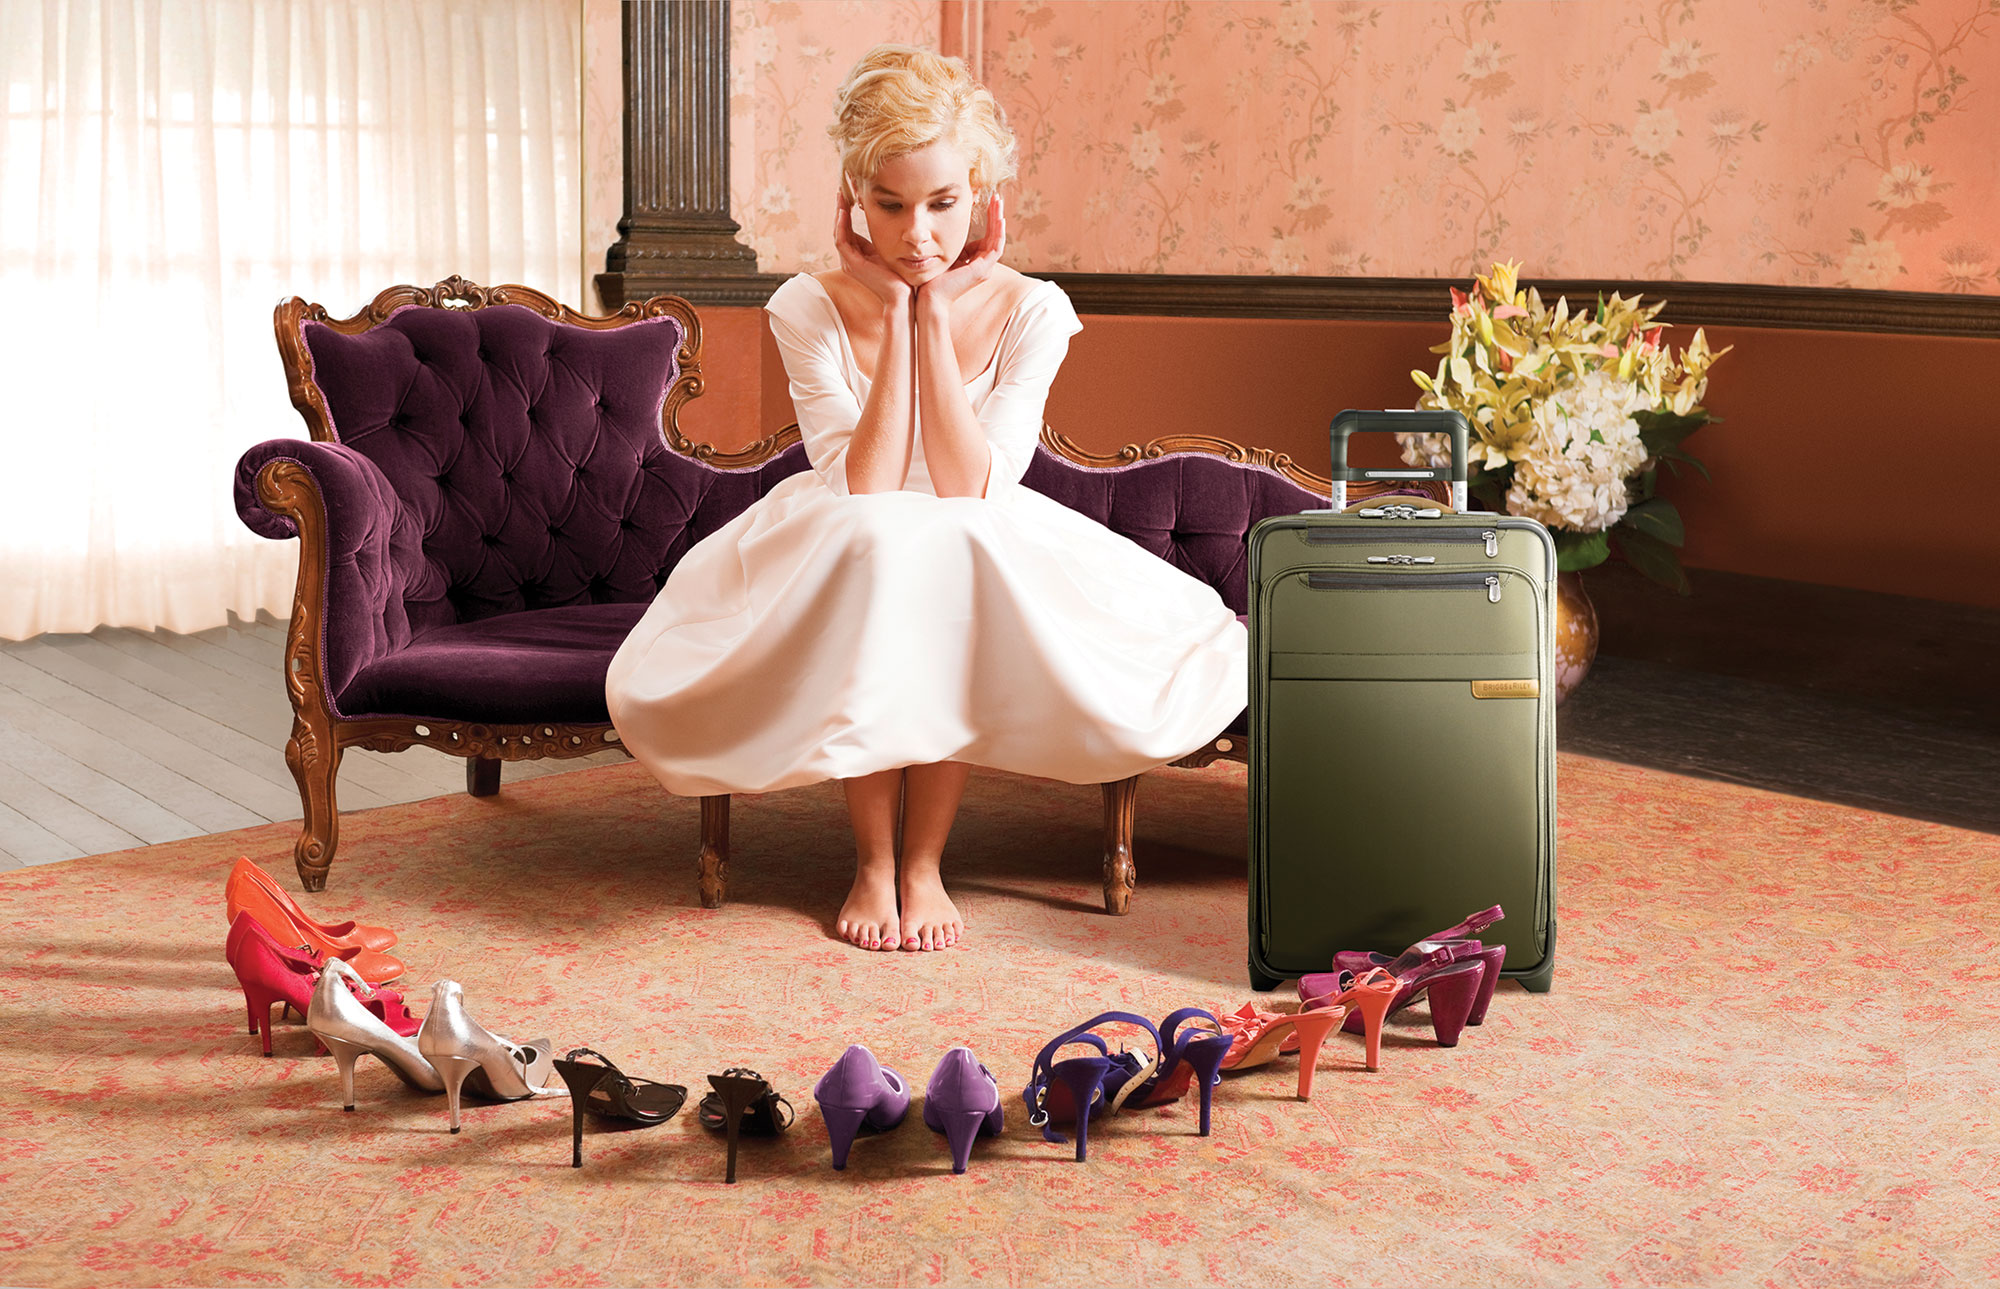 WomenWithShoes_Canvass_v3_Extended_briggs_and_riley_luggage.jpg